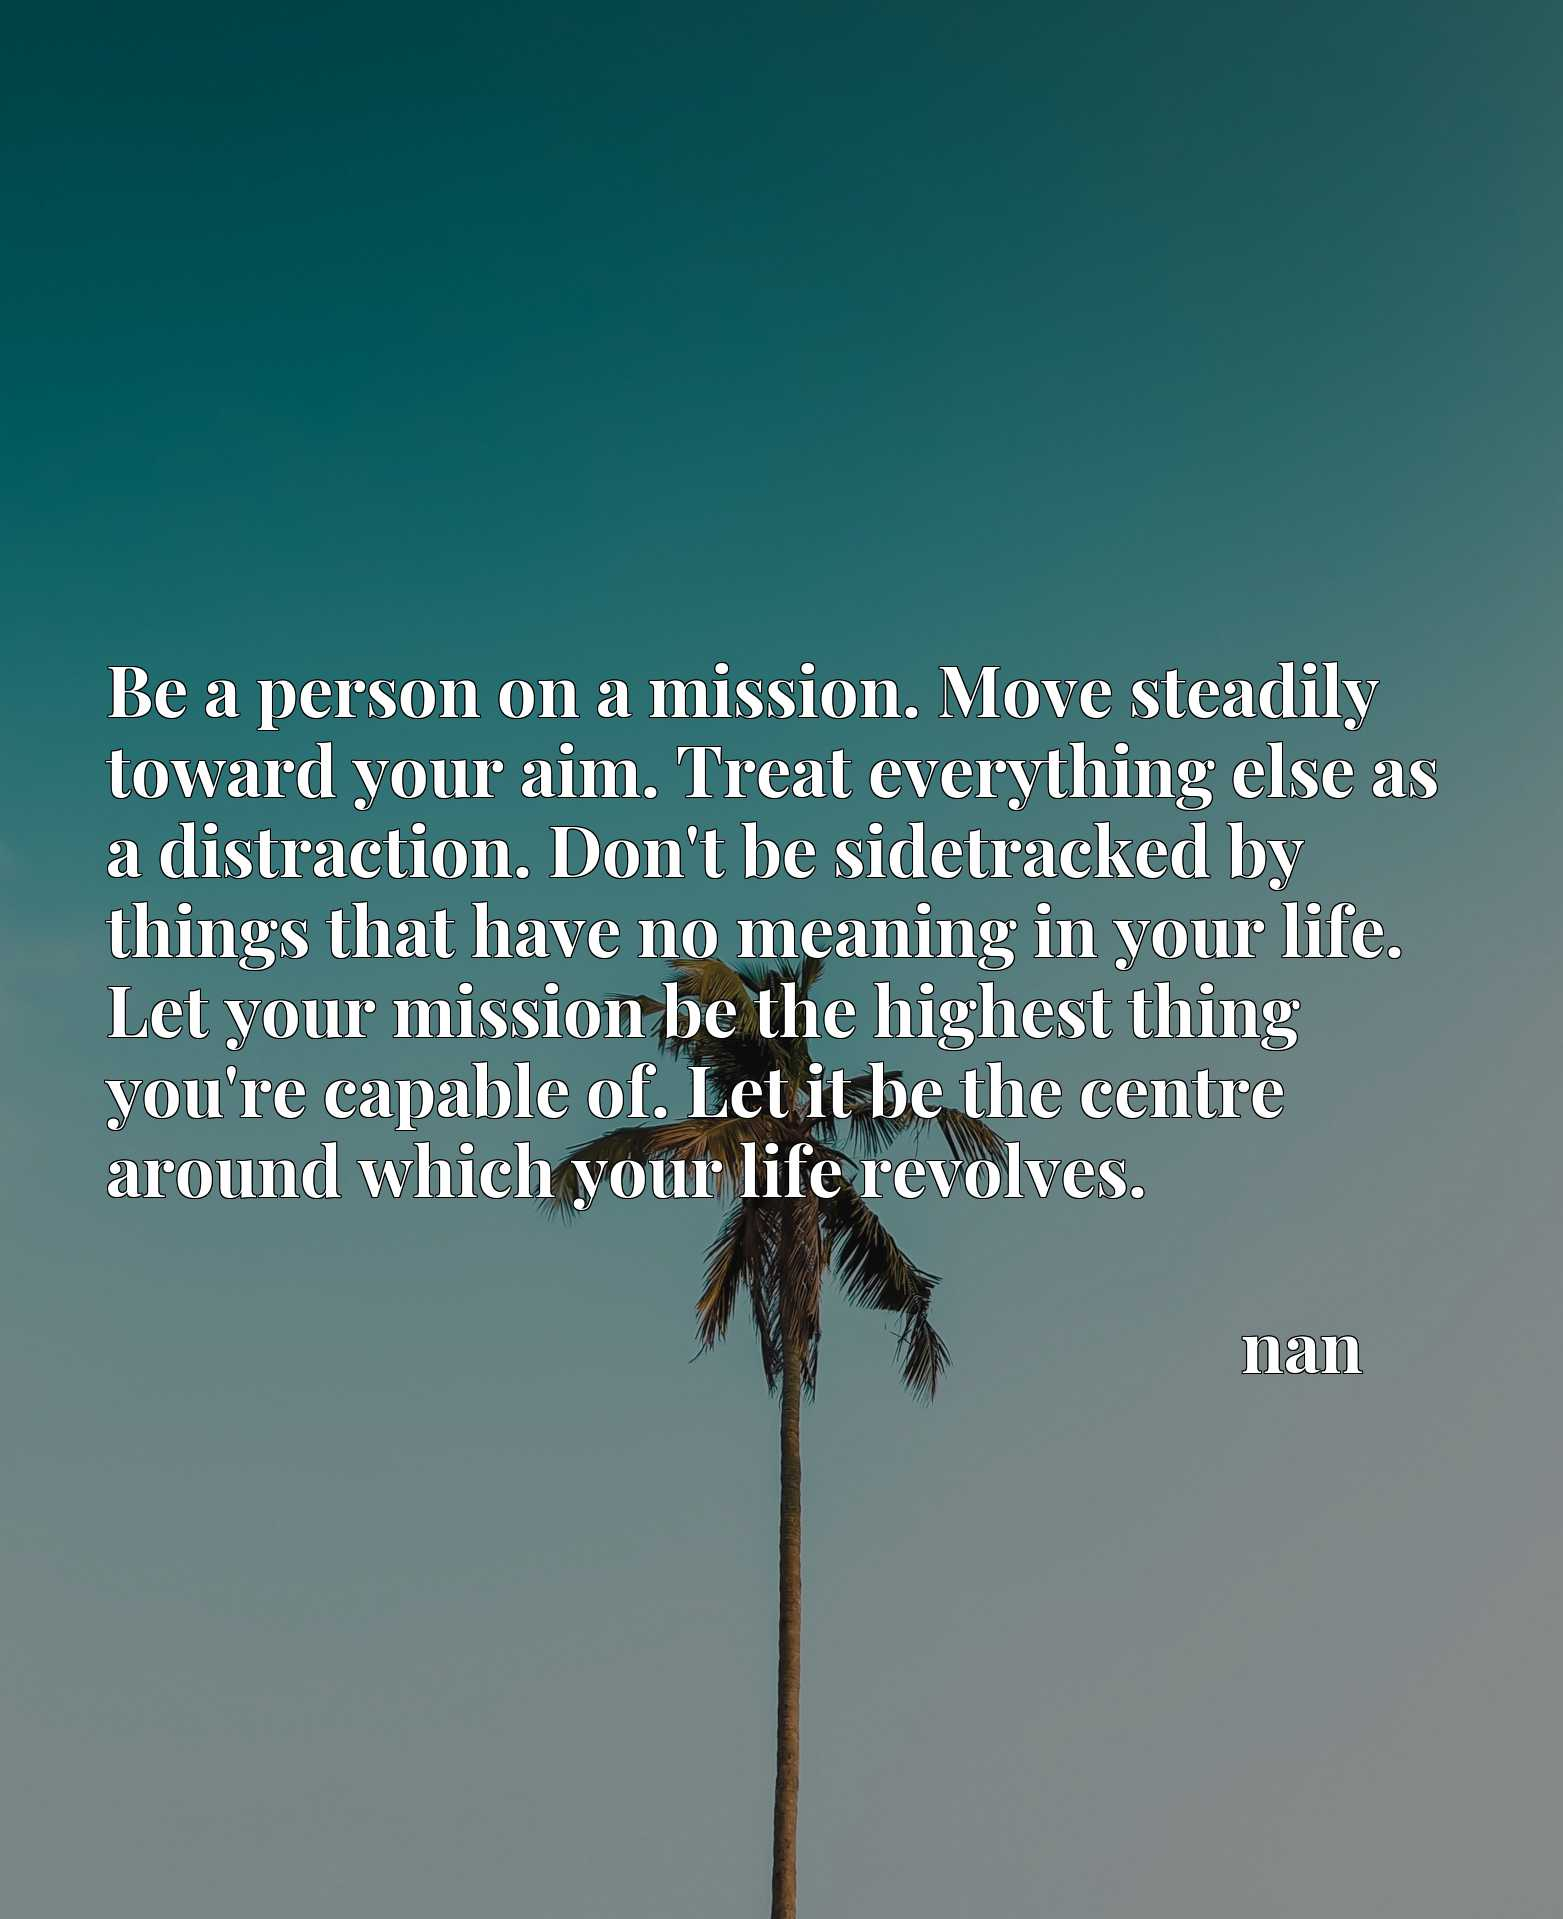 Be a person on a mission. Move steadily toward your aim. Treat everything else as a distraction. Don't be sidetracked by things that have no meaning in your life. Let your mission be the highest thing you're capable of. Let it be the centre around which your life revolves.